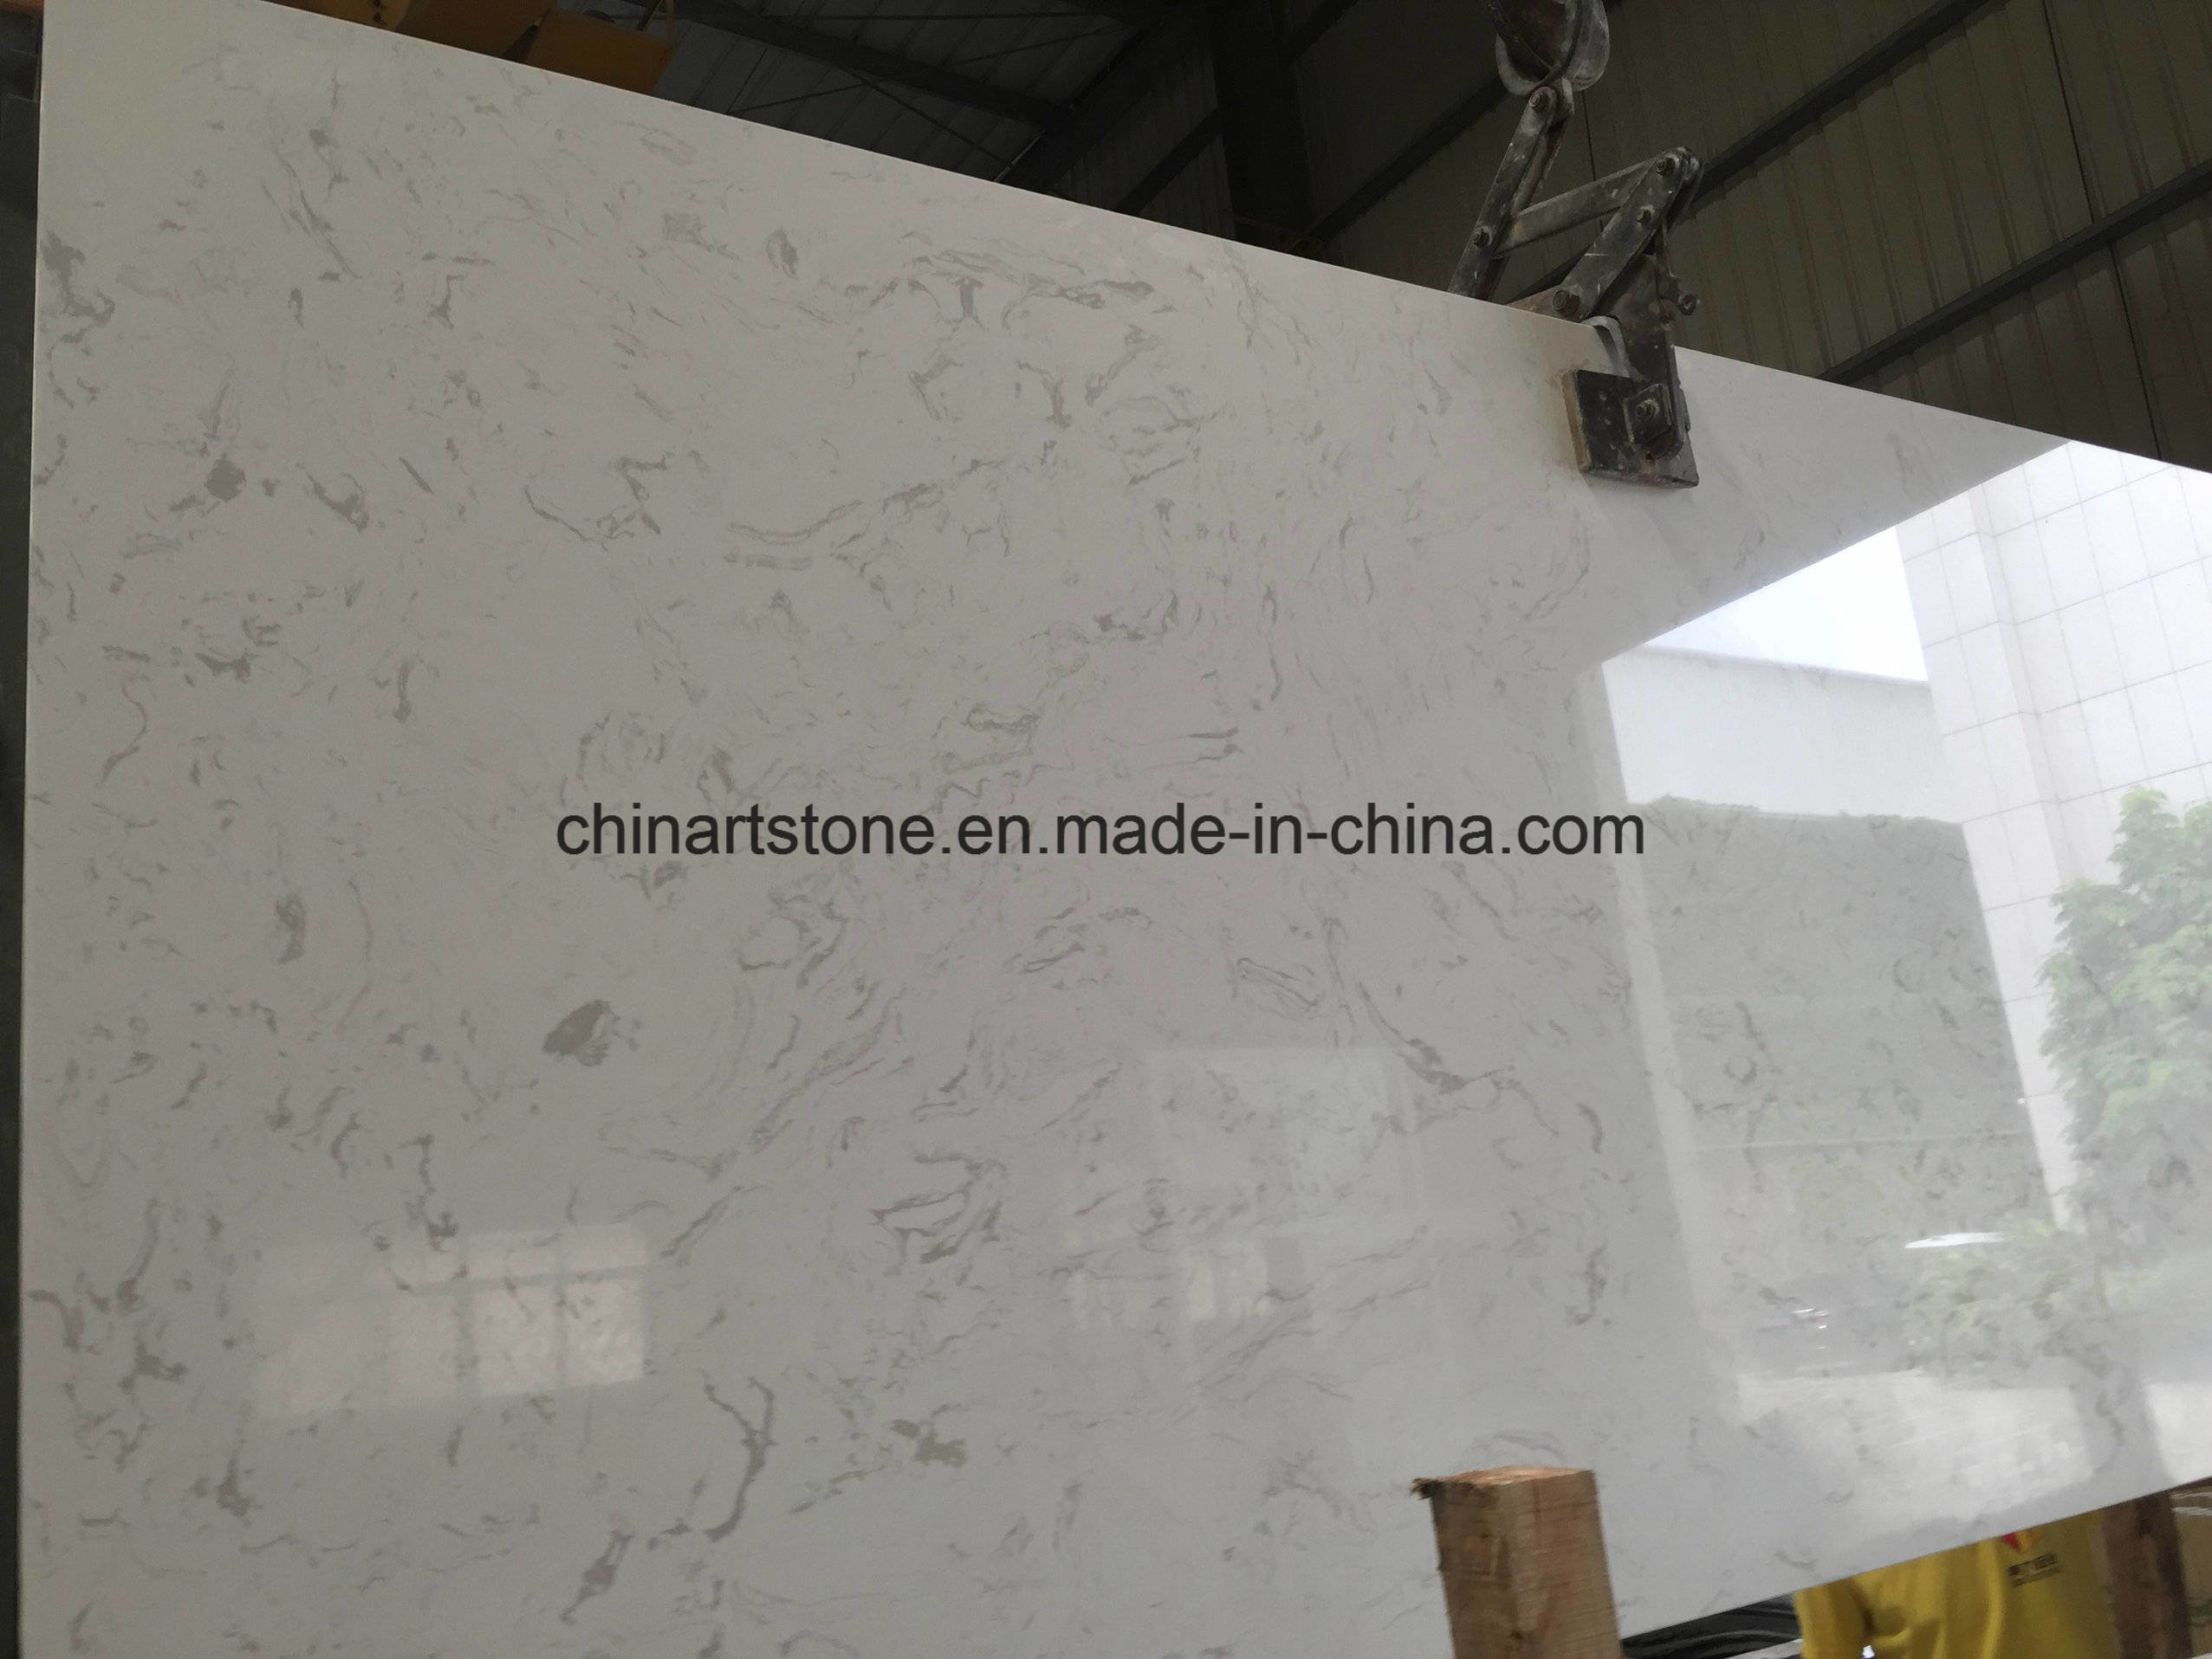 China Wholesale China White Artificial Marble Slab For Tiles And - Fake marble slab